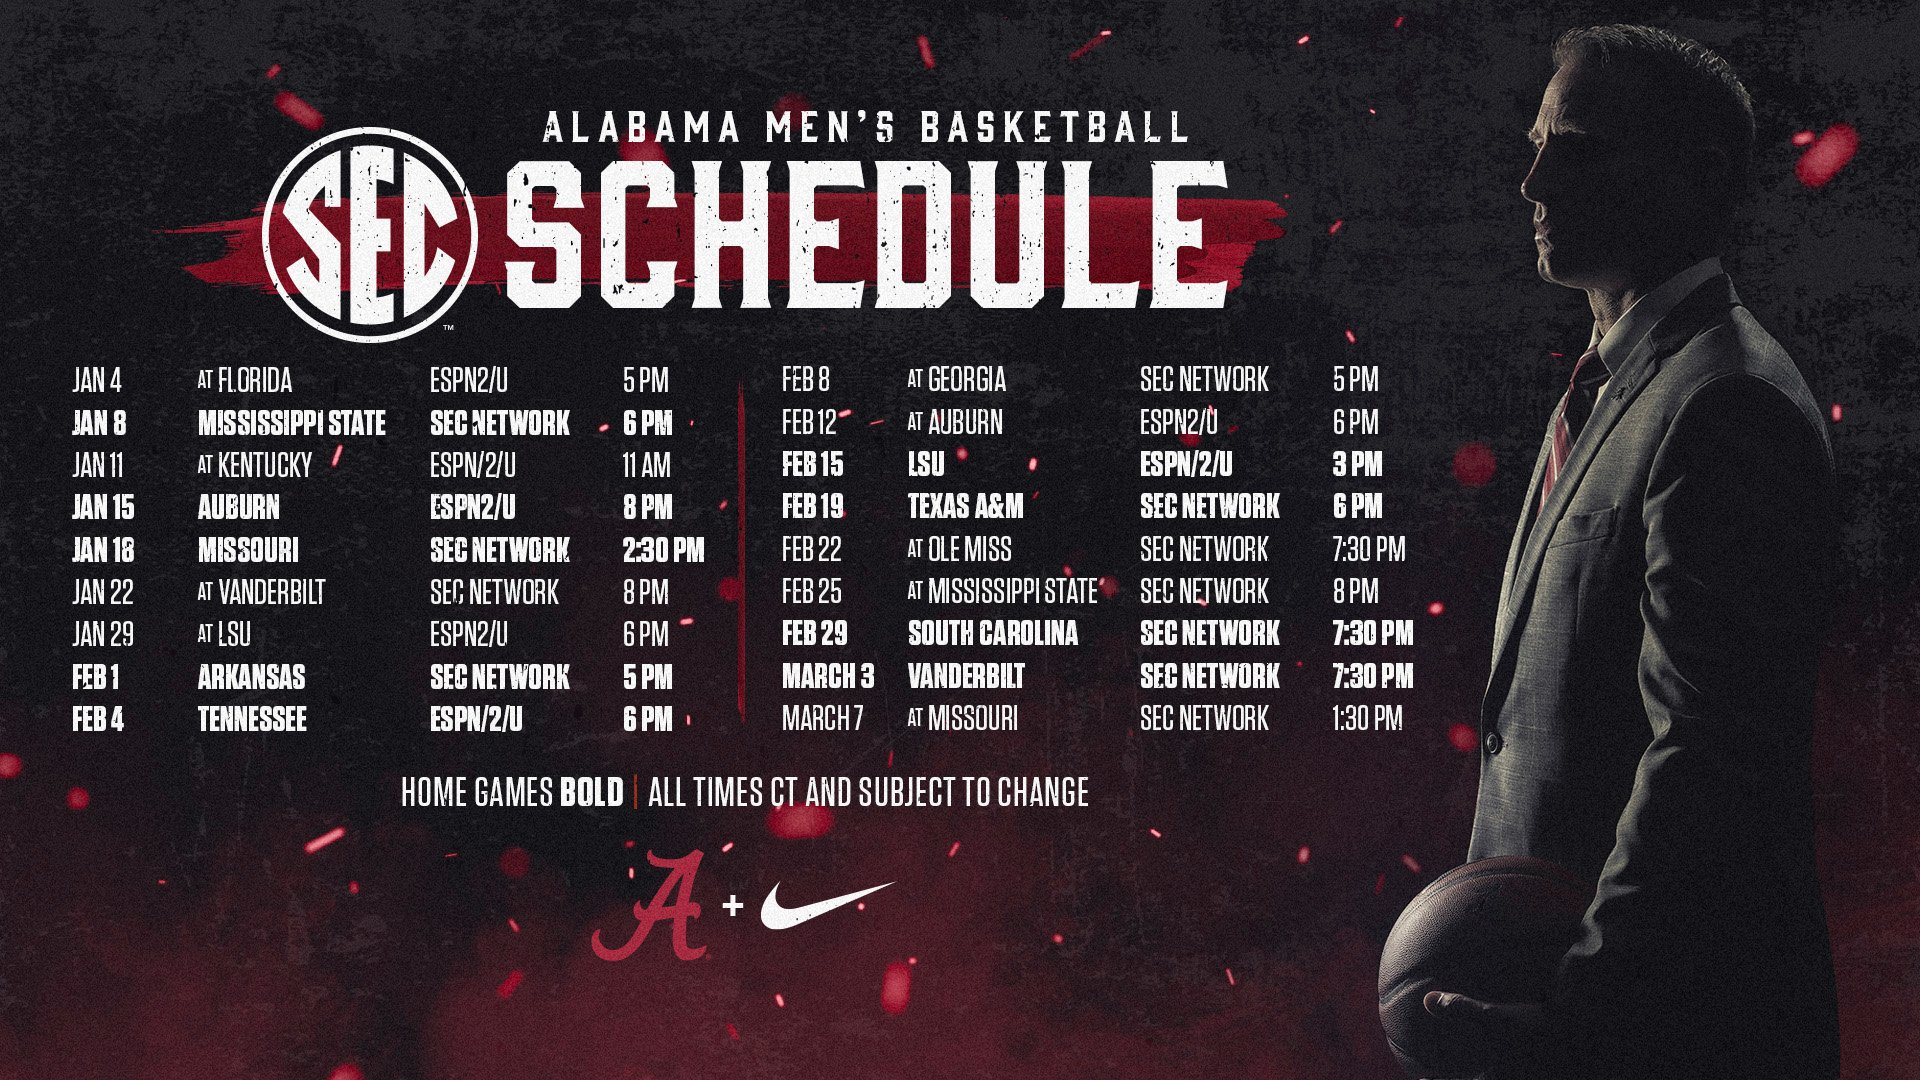 Alabama Crimson Tide NCAA Basketball: The 2020 @SEC men's basketball schedule has been released‼️  🔗https://t.co/UonFz...